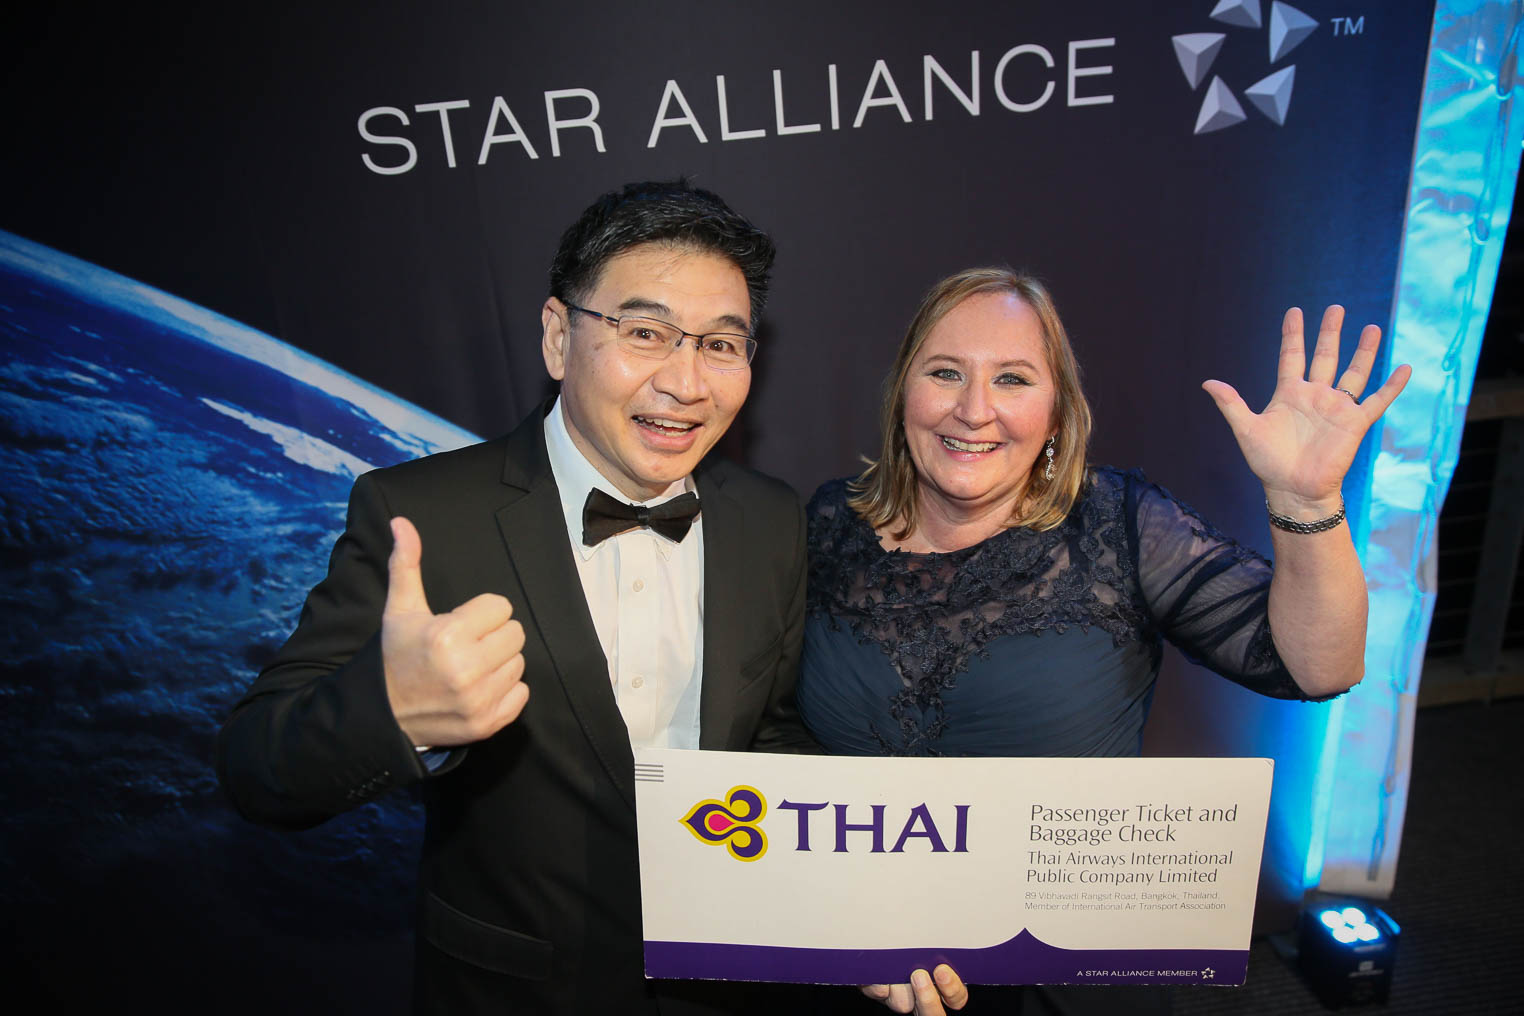 Star Alliance_4_ Scratch and Win_Prin Yooprasert (Thai)_Bianca Sobotta (Carlson Wagonlit)